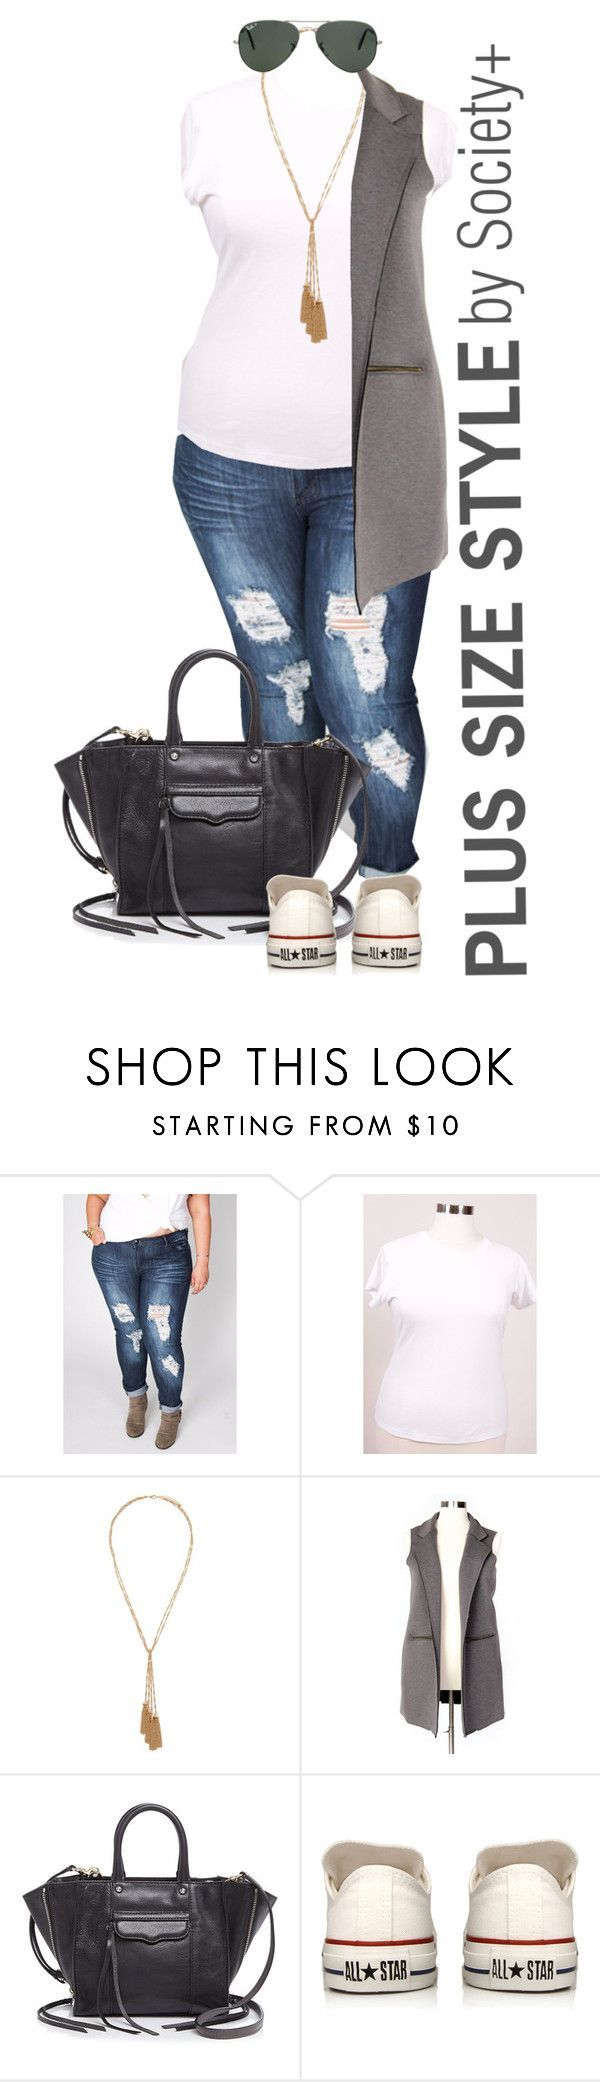 """""""Plus Size Maxi Vest - Society+"""" by iamsocietyplus on Polyvore featuring Forever 21, Rebecca Minkoff, Converse, Ray-Ban, plussize, plussizefashion, societyplus and iamsocietyplus"""